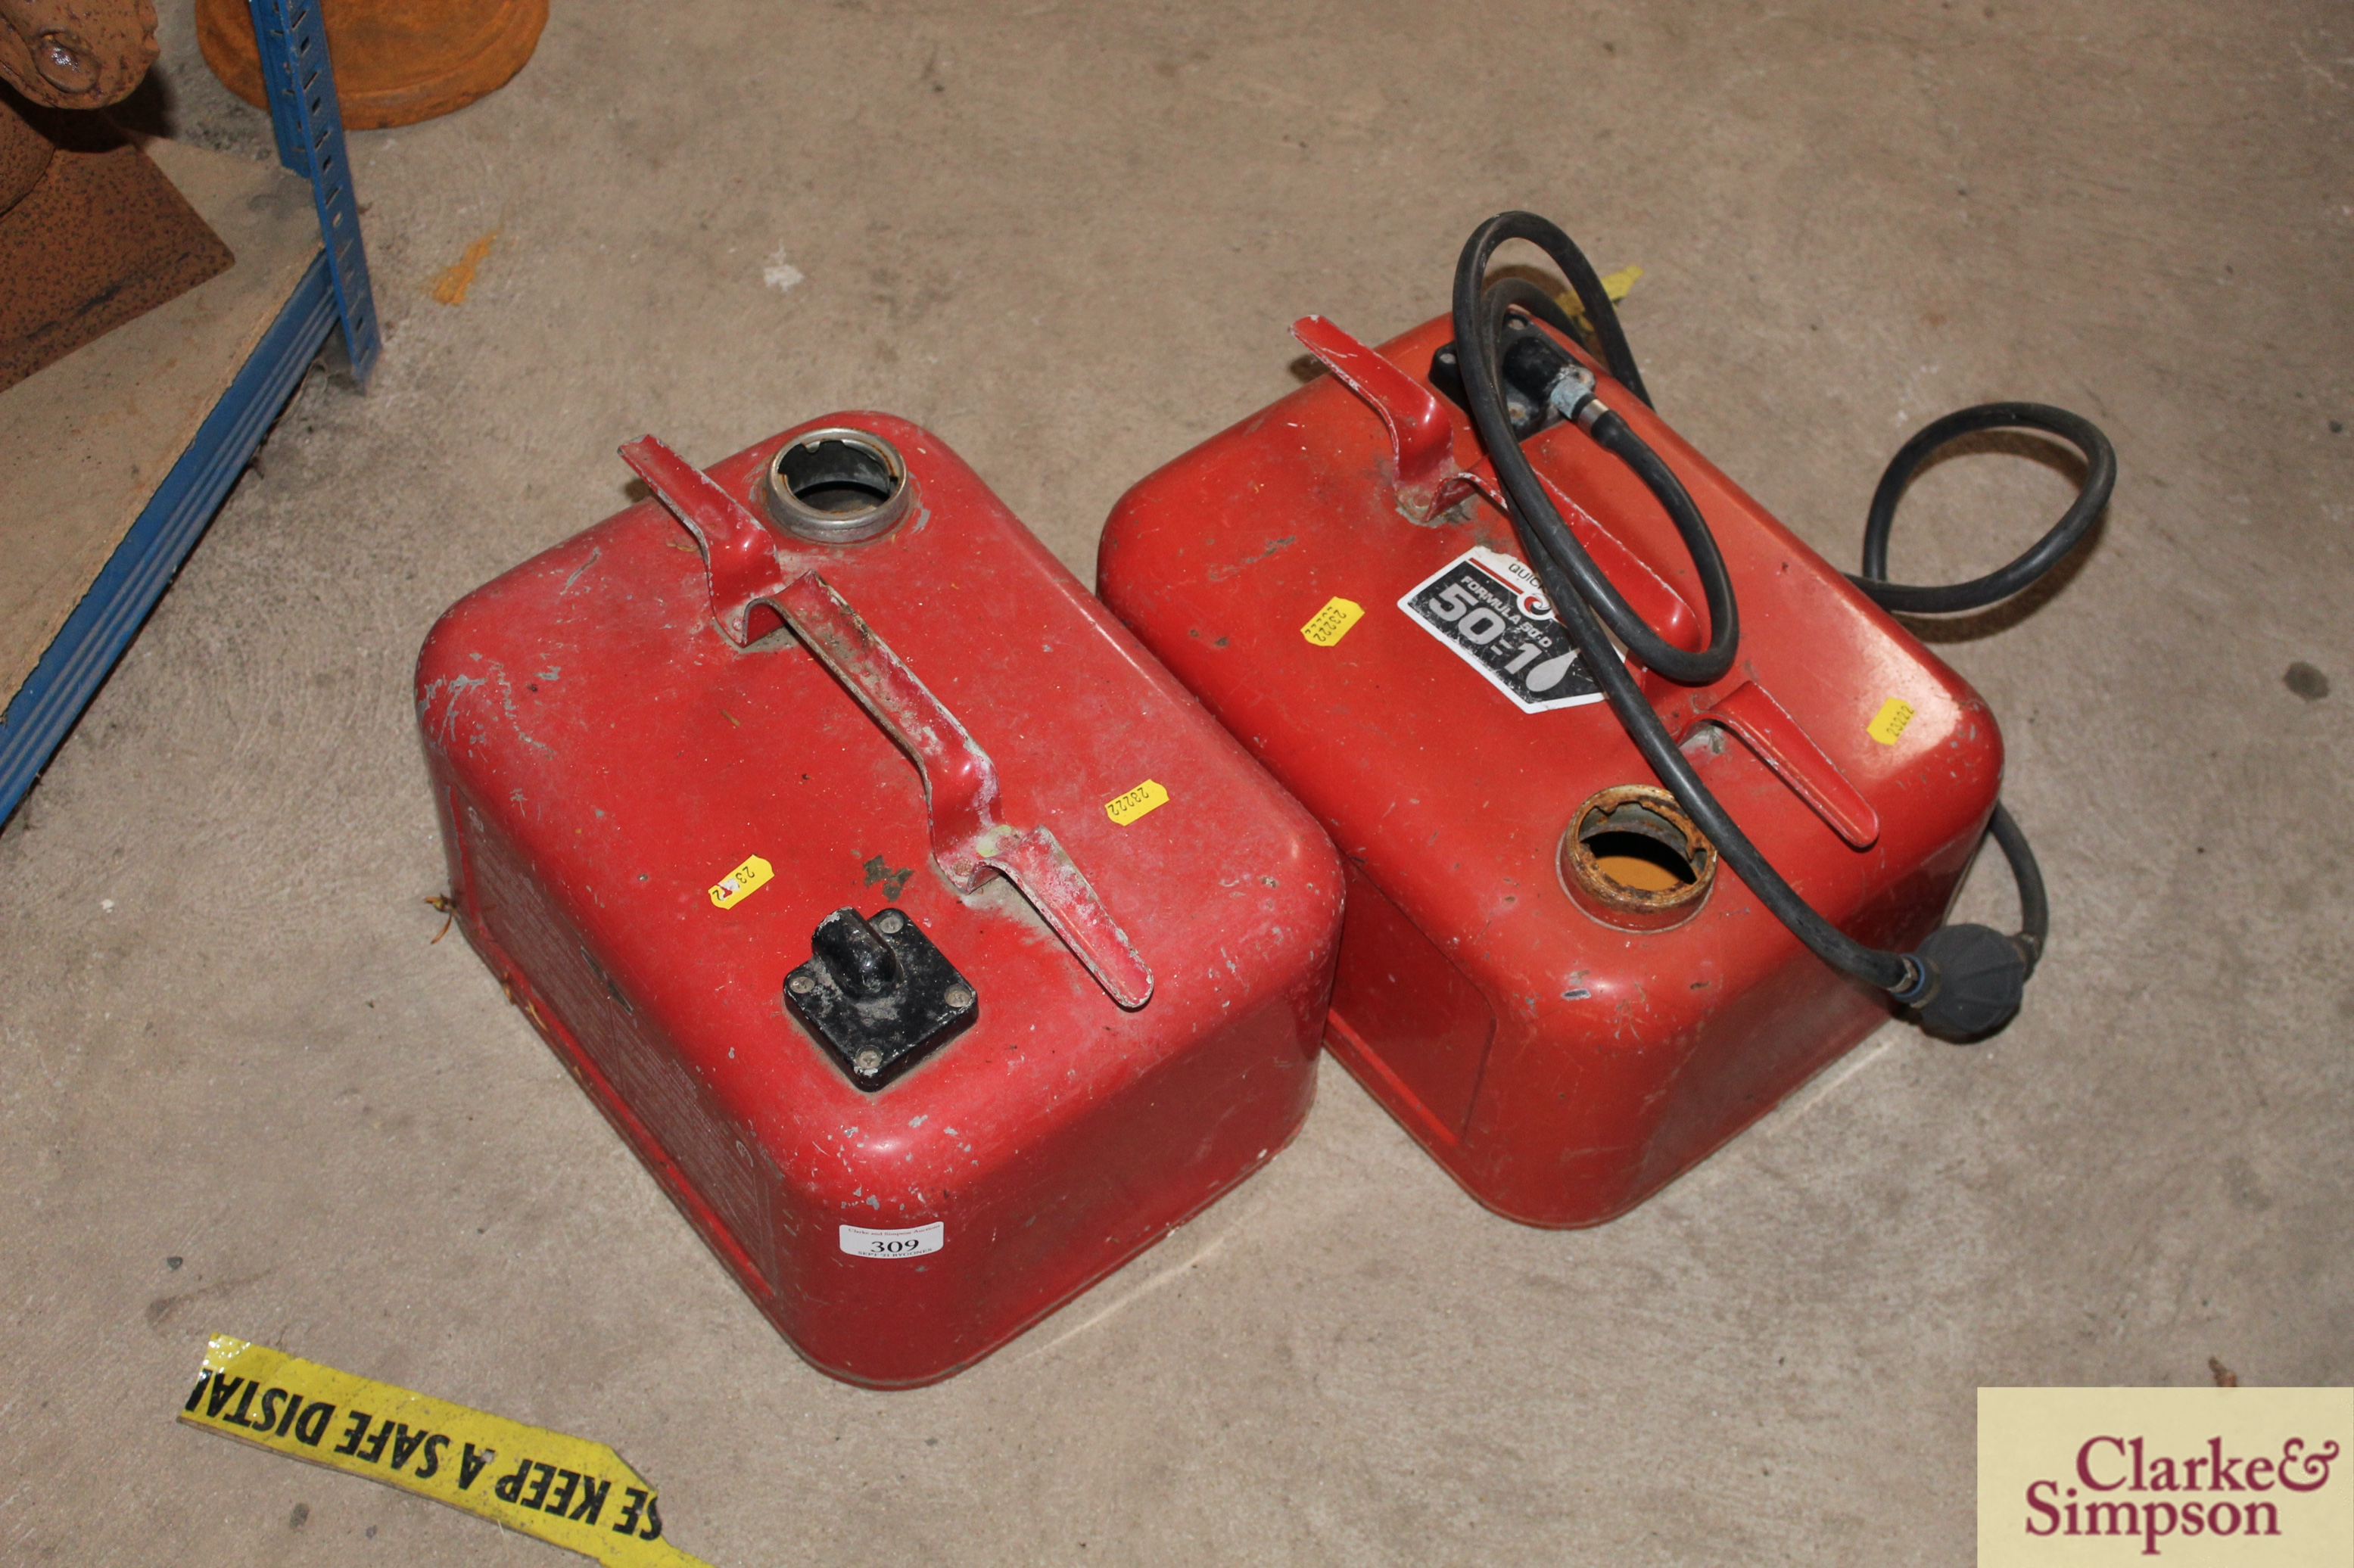 Two boat fuel cans